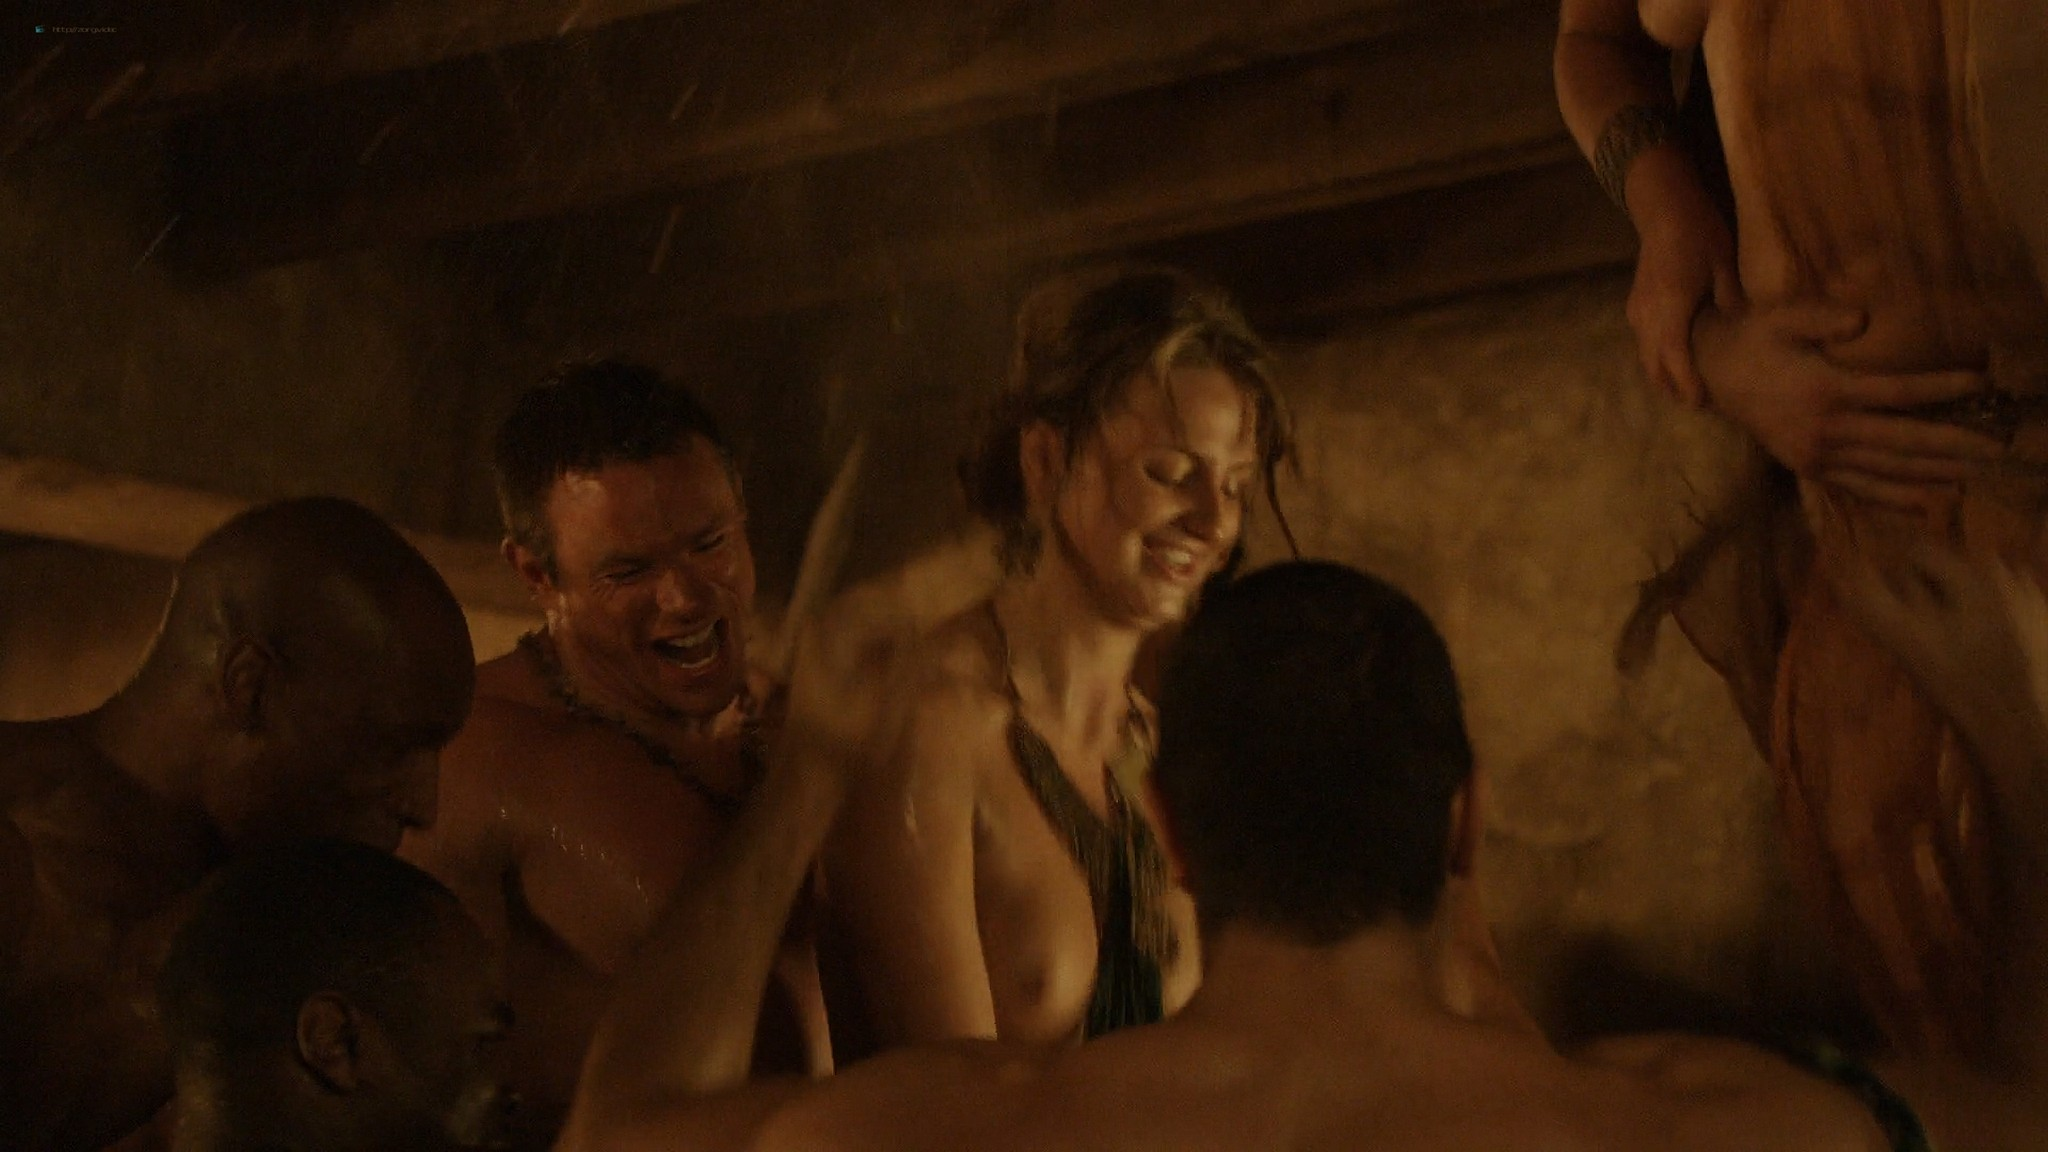 Lucy Lawless nude Lesley-Ann Brandt and other nude sex too - Spartacus (2010) Delicate Things s1e6 HD 1080p BluRay (5)